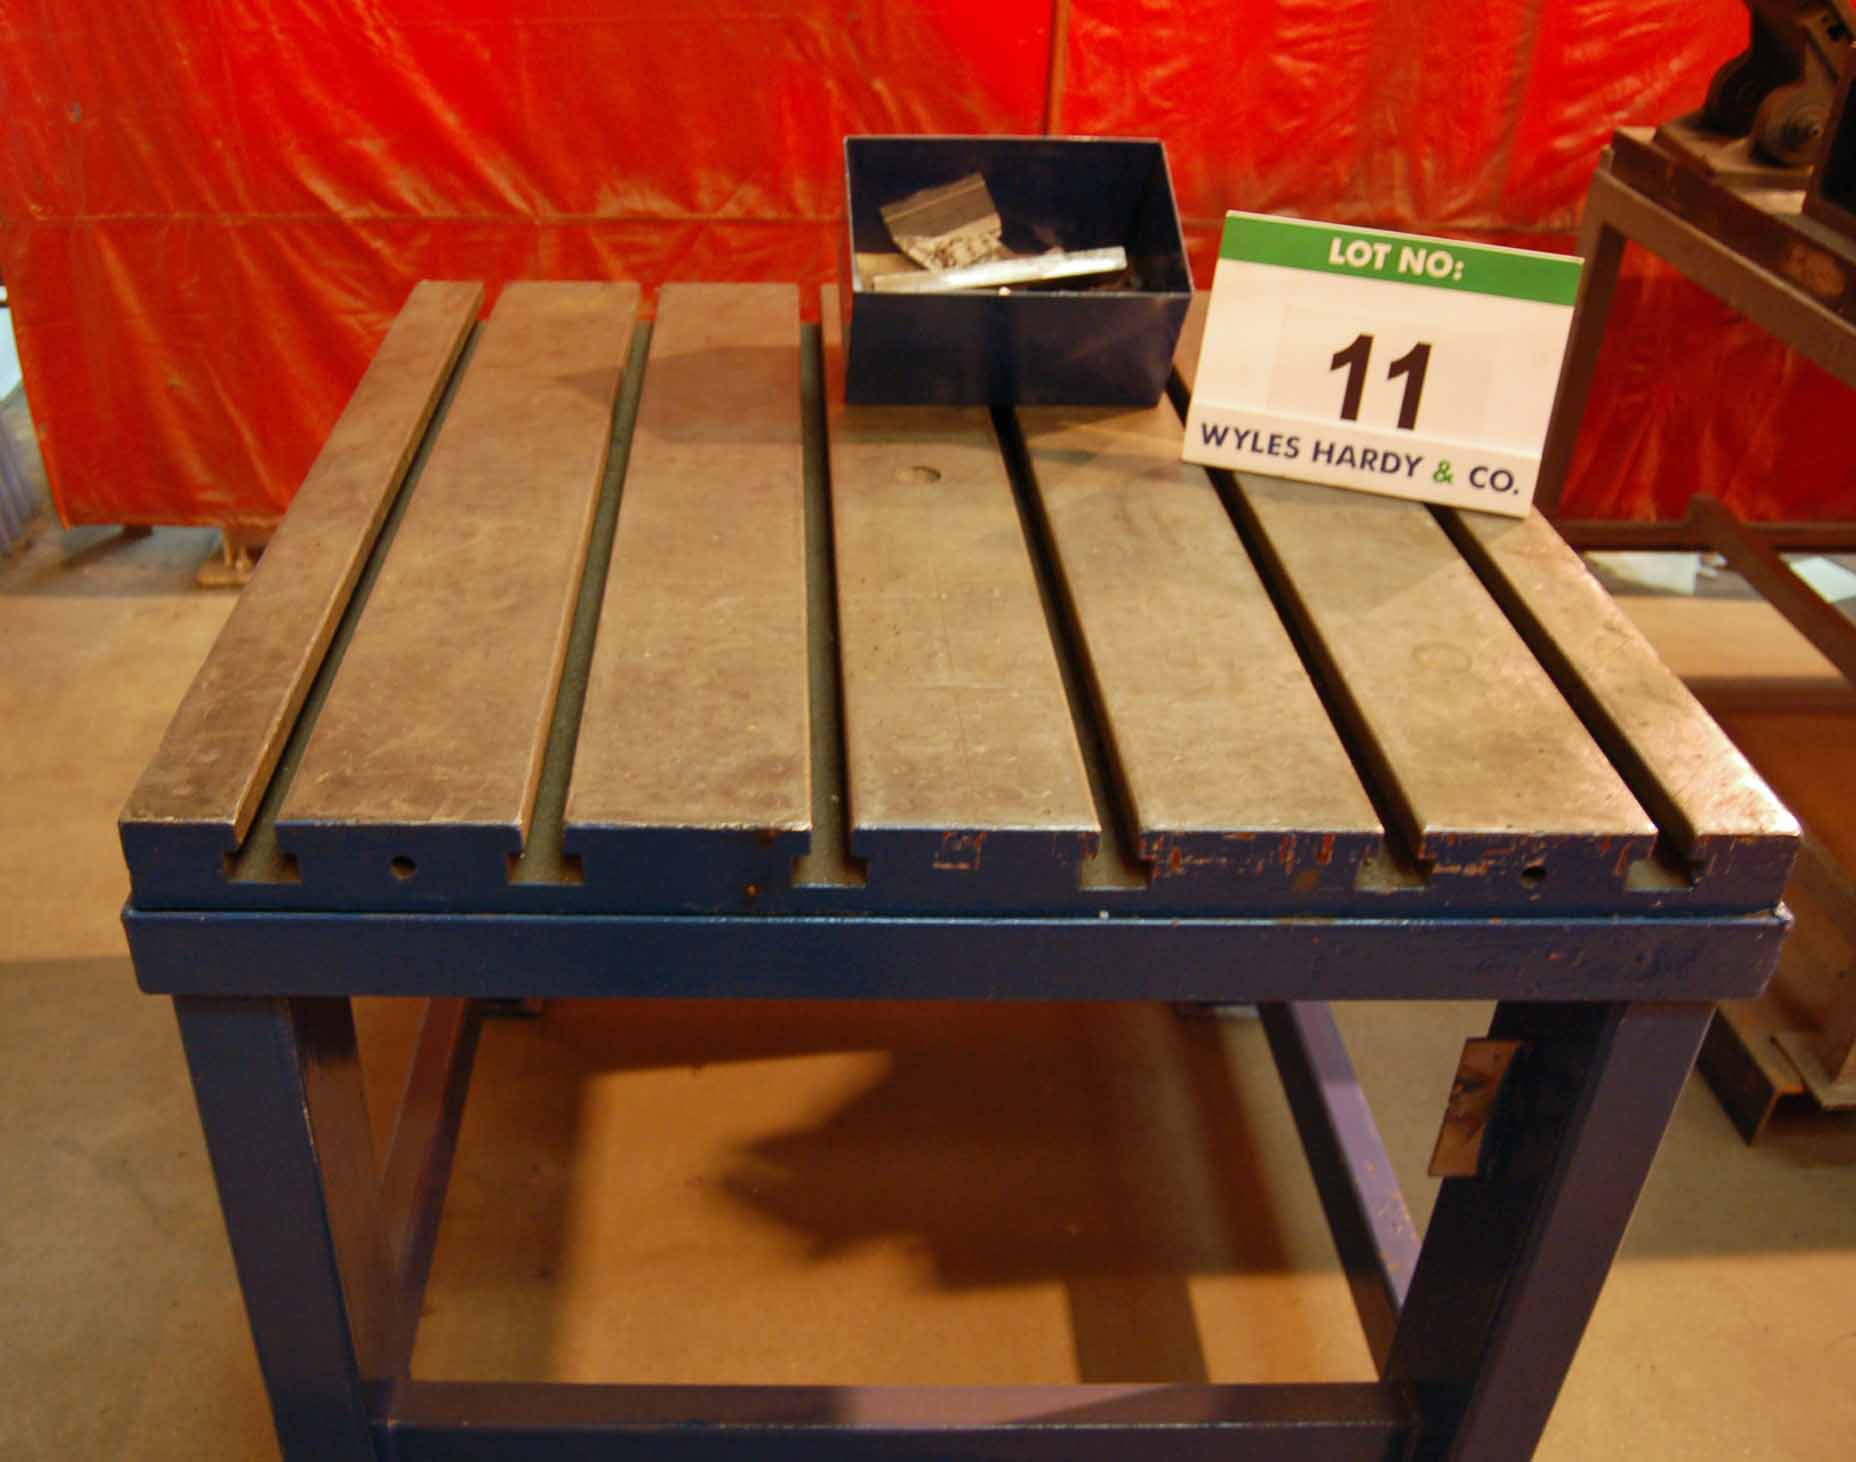 Lot 11 - A 1060mm x 1060mm x 950mm height Cast Iron T-Slotted Workpiece Table